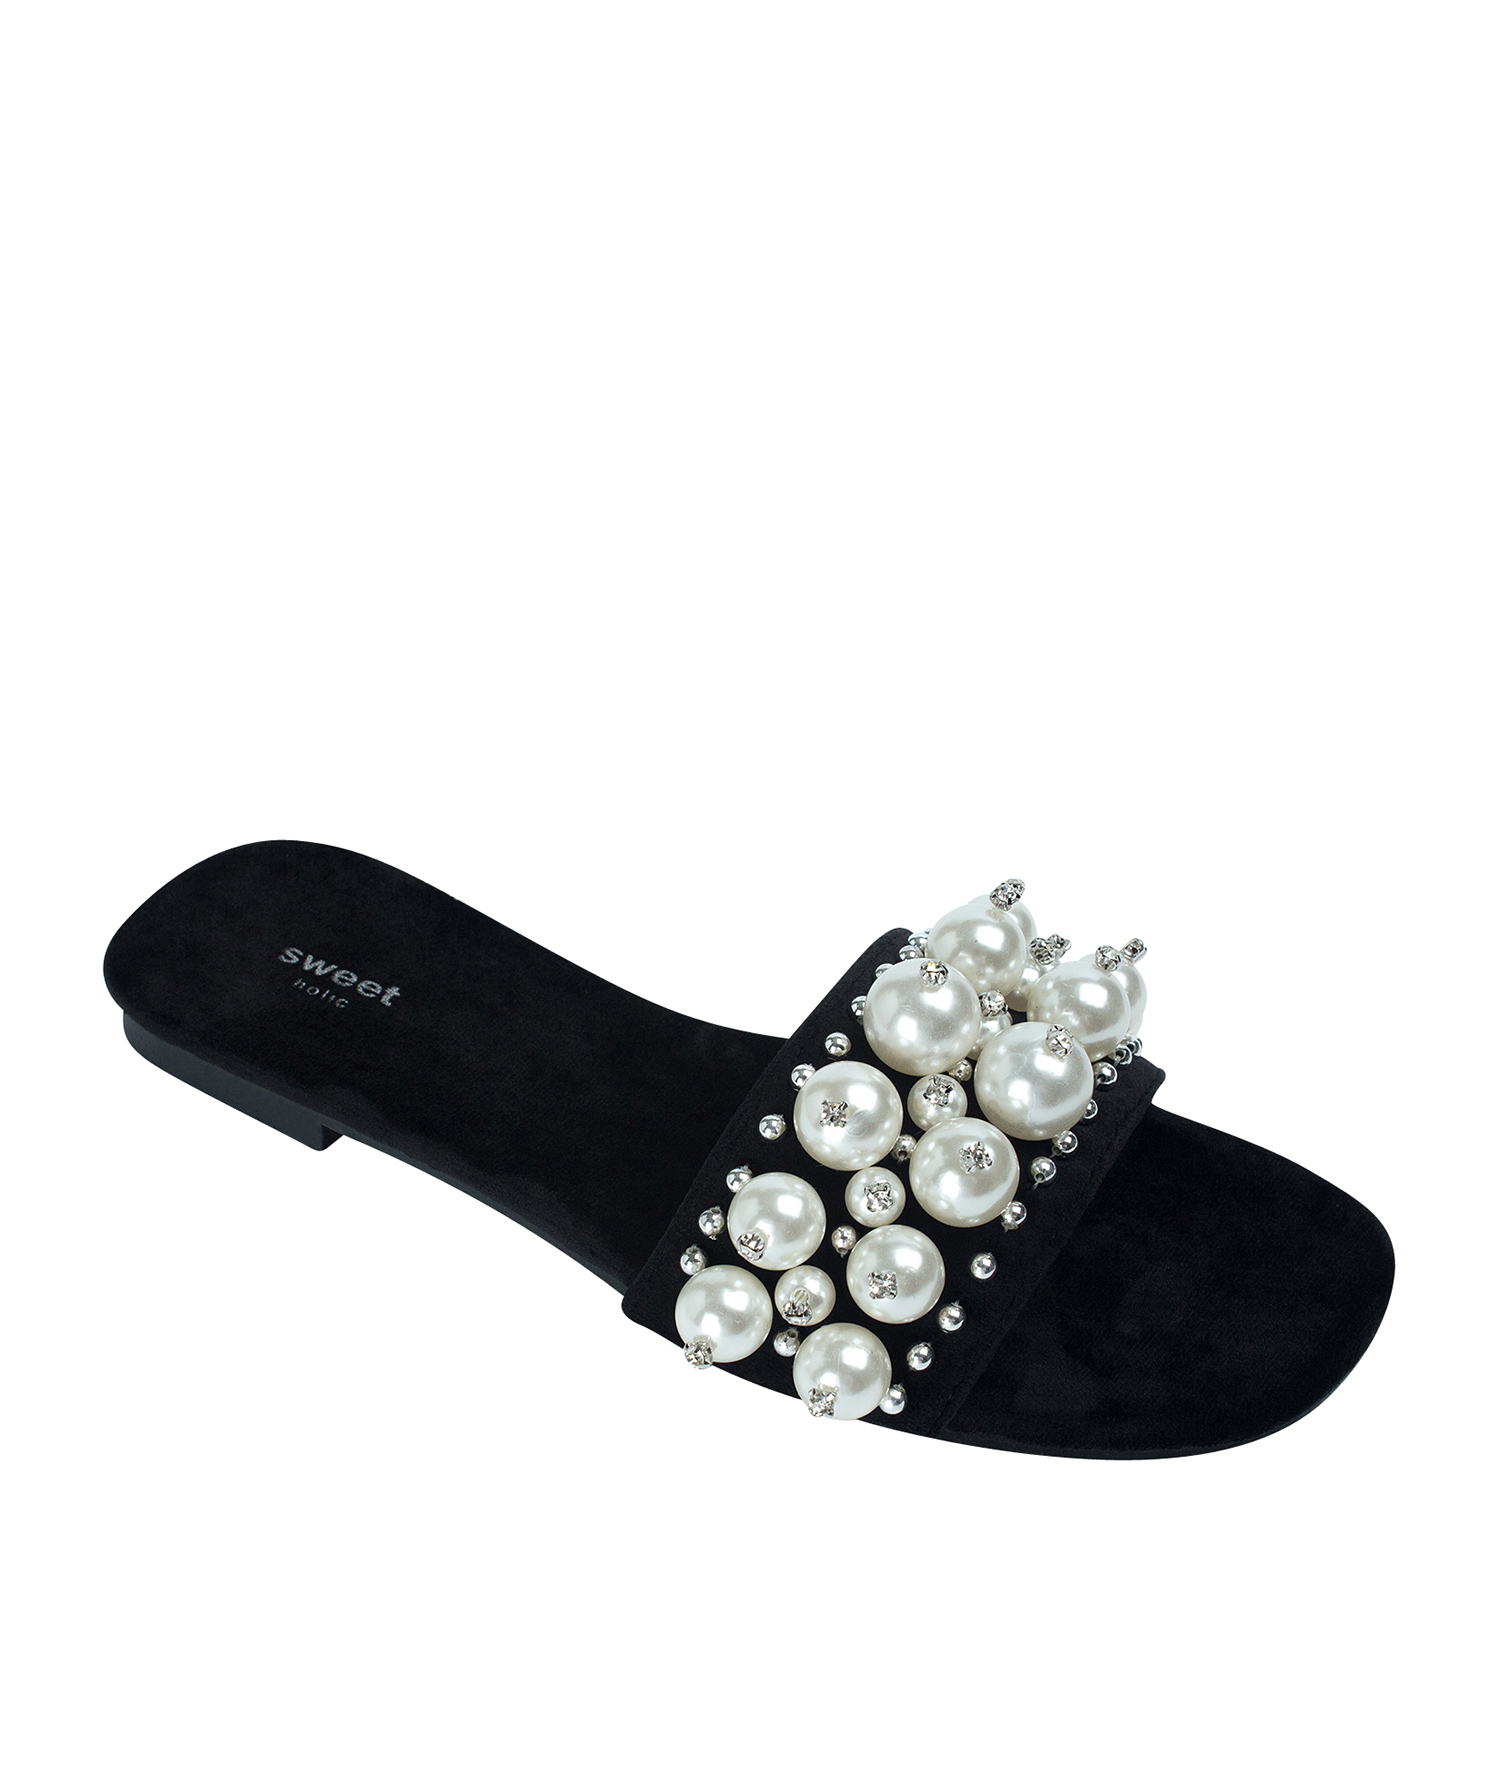 5898a354bbc6 AnnaKastle Womens Faux Pearl Studded Slide Sandals Black